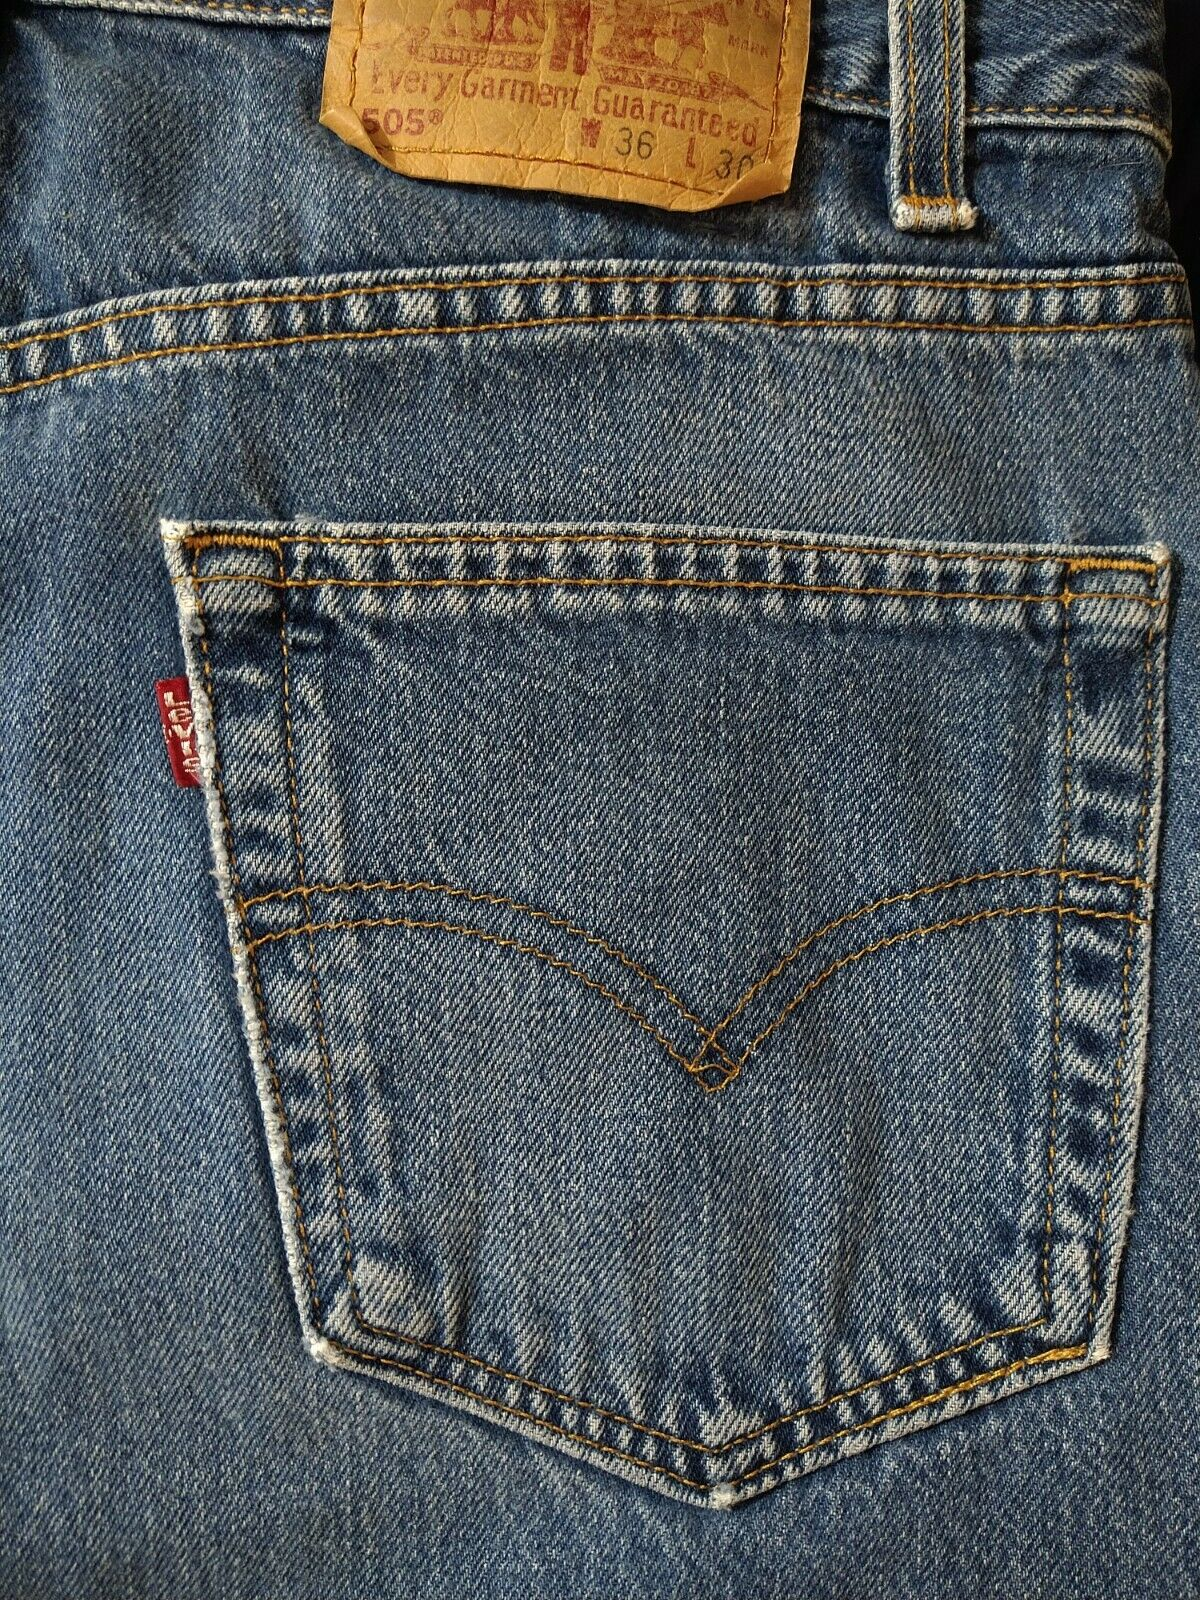 Levi's 505 Jean's Made in the USA Men's size 36x3… - image 9